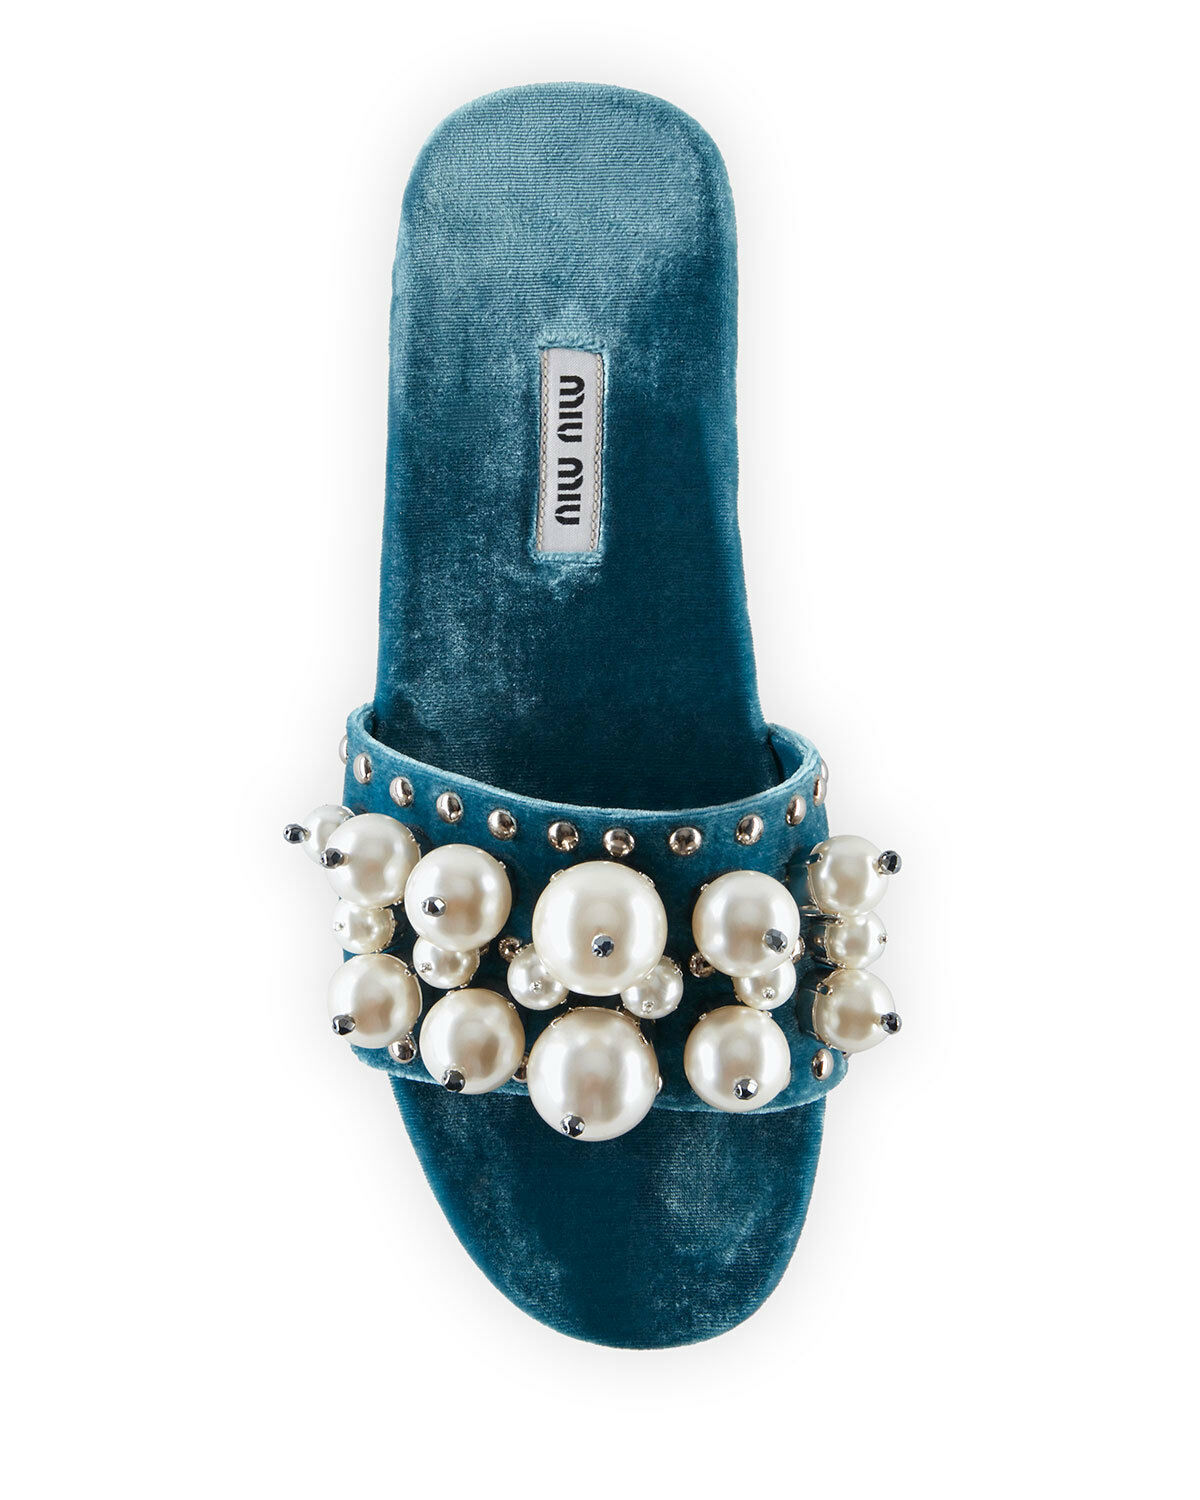 Miu Miu Pearly Velvet Slide Sandals Size 39 MSRP: $775.00